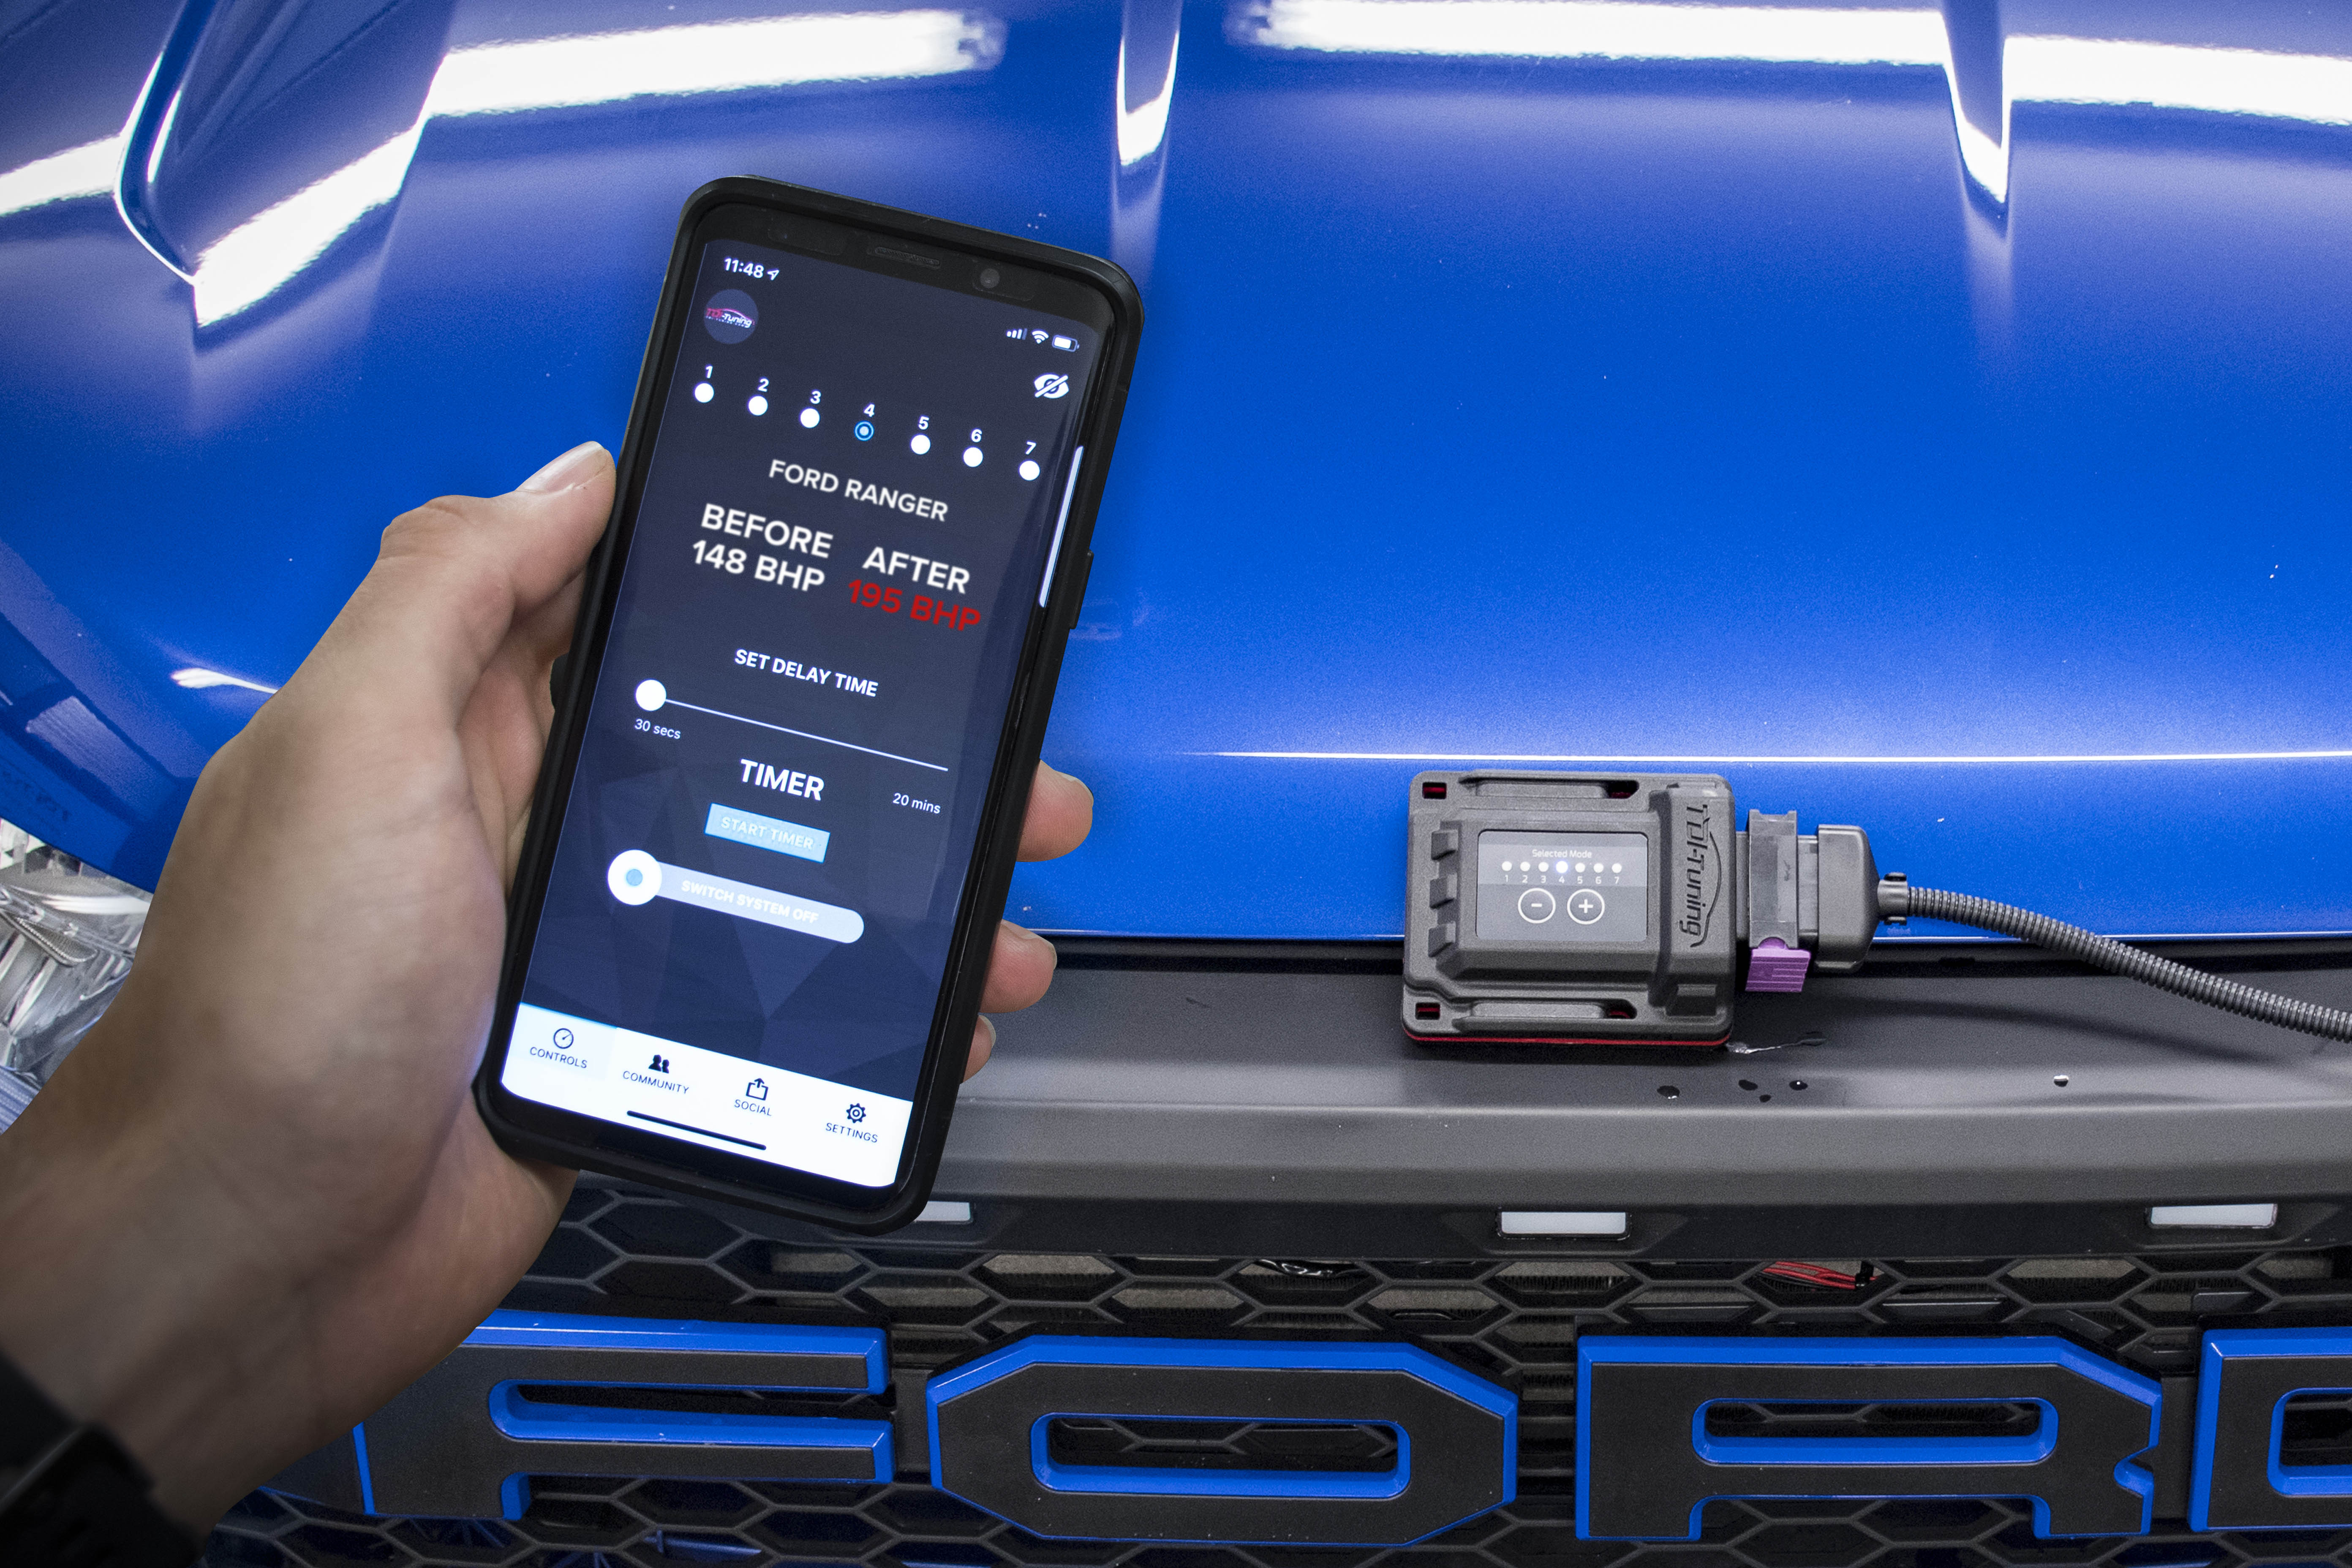 Ford ranger bluetooth tuning